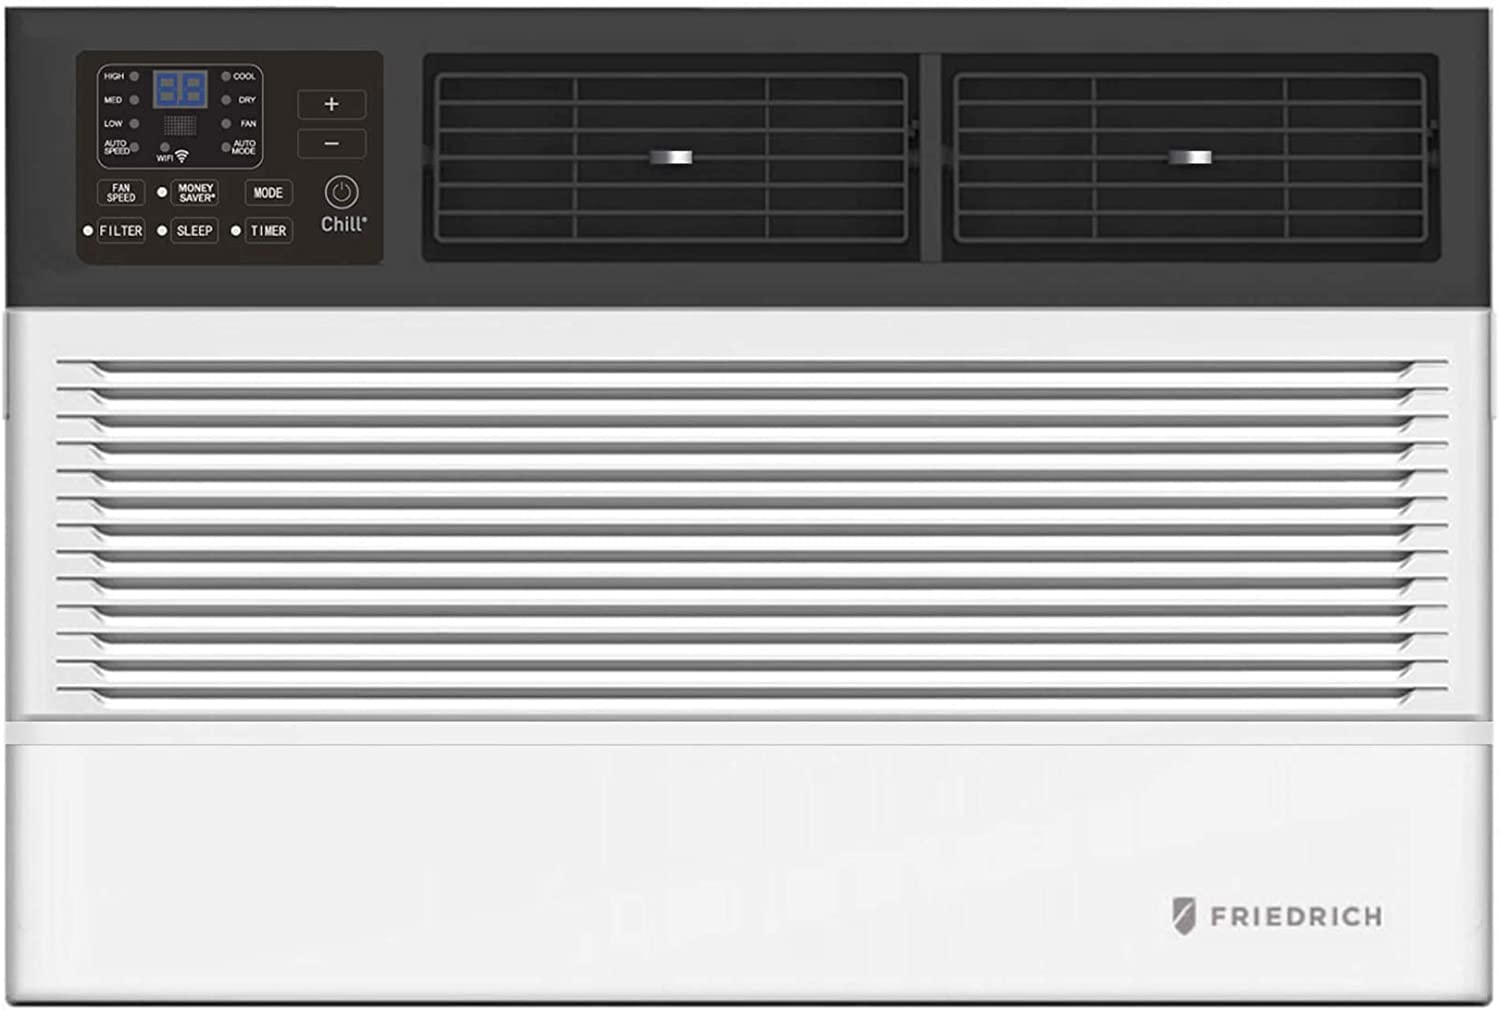 Friedrich CCW12B10A Chill Premier Smart Air Conditioner Wall & Window Unit, WiFi Mobile Control, White, Cooling Capacity (12,000 BTU)